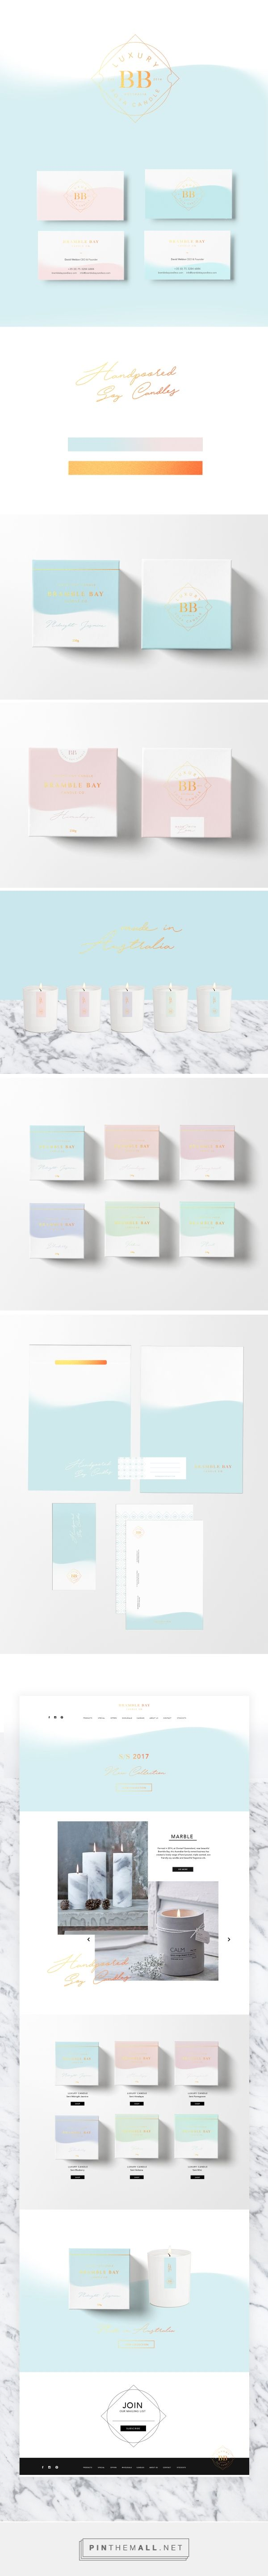 Bramble Bay Candles Branding and Packaging by Viola Wyszynska   Fivestar Branding Agency – Design and Branding Agency & Curated Inspiration Gallery